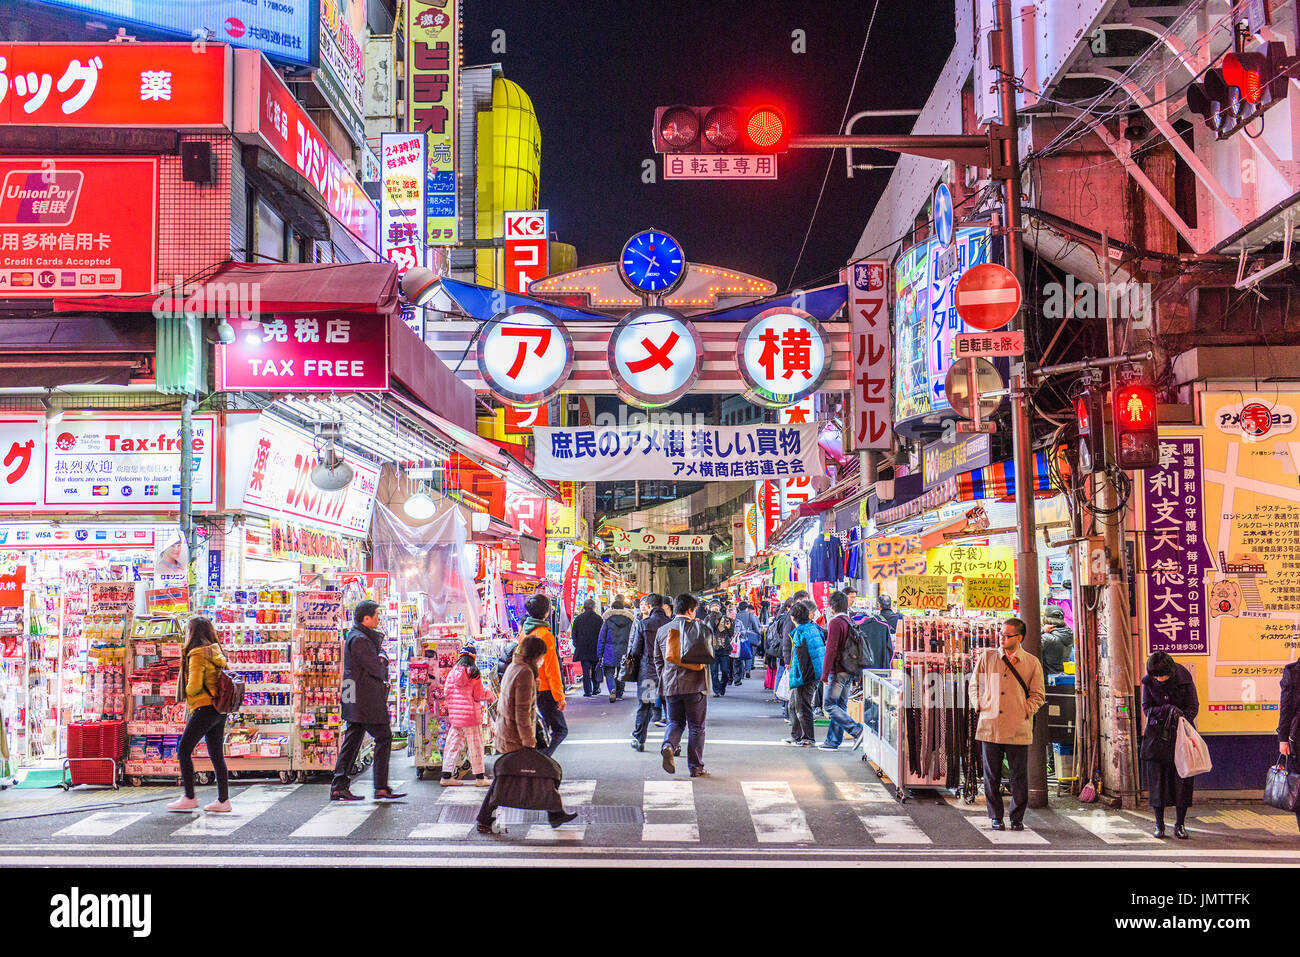 TOKYO, JAPAN - DECEMBER 28, 2015: Crowds at Ameyoko shopping district of Tokyo. The street was the site of a black Stock Photo